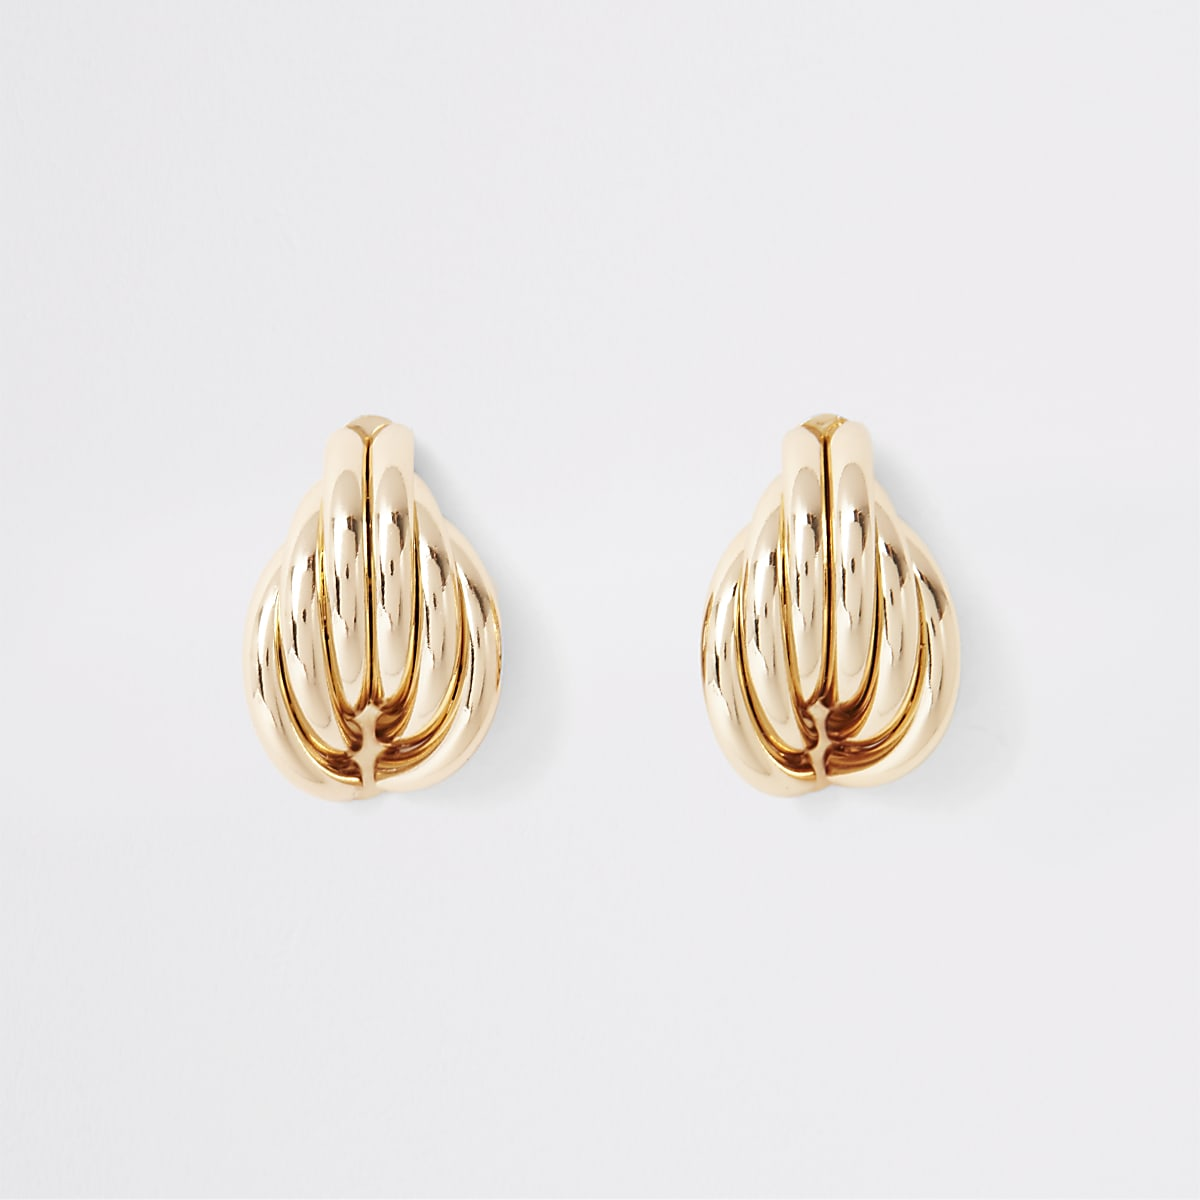 Gold color folded shell stud earrings